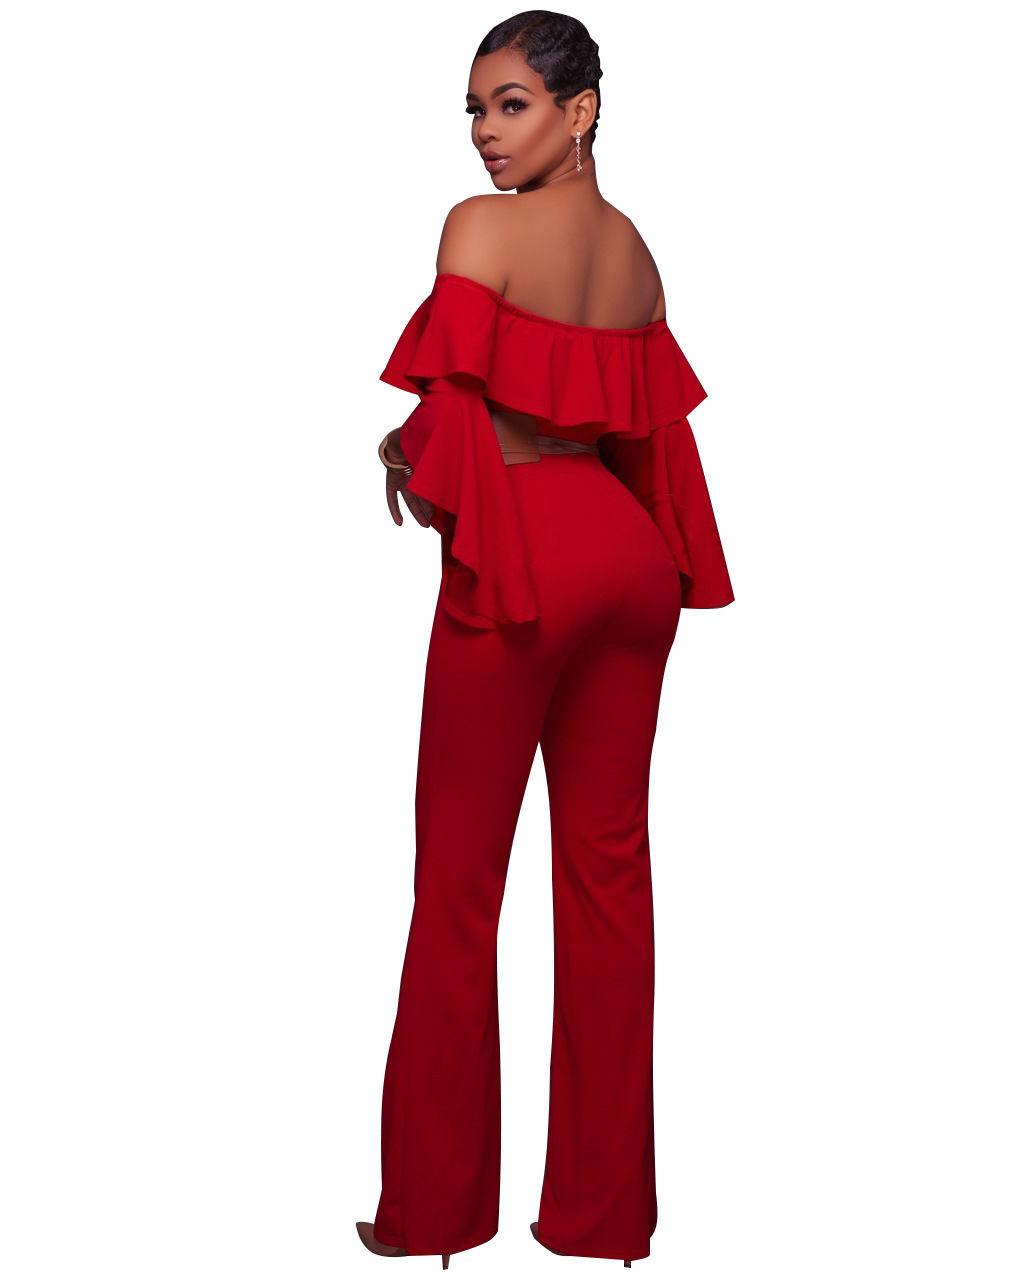 74a837e05670 ... OFF SHOULDER RUFFLE BELL SLEEVE JUMPSUIT Return to Previous Page. New.  lightbox · lightbox · lightbox